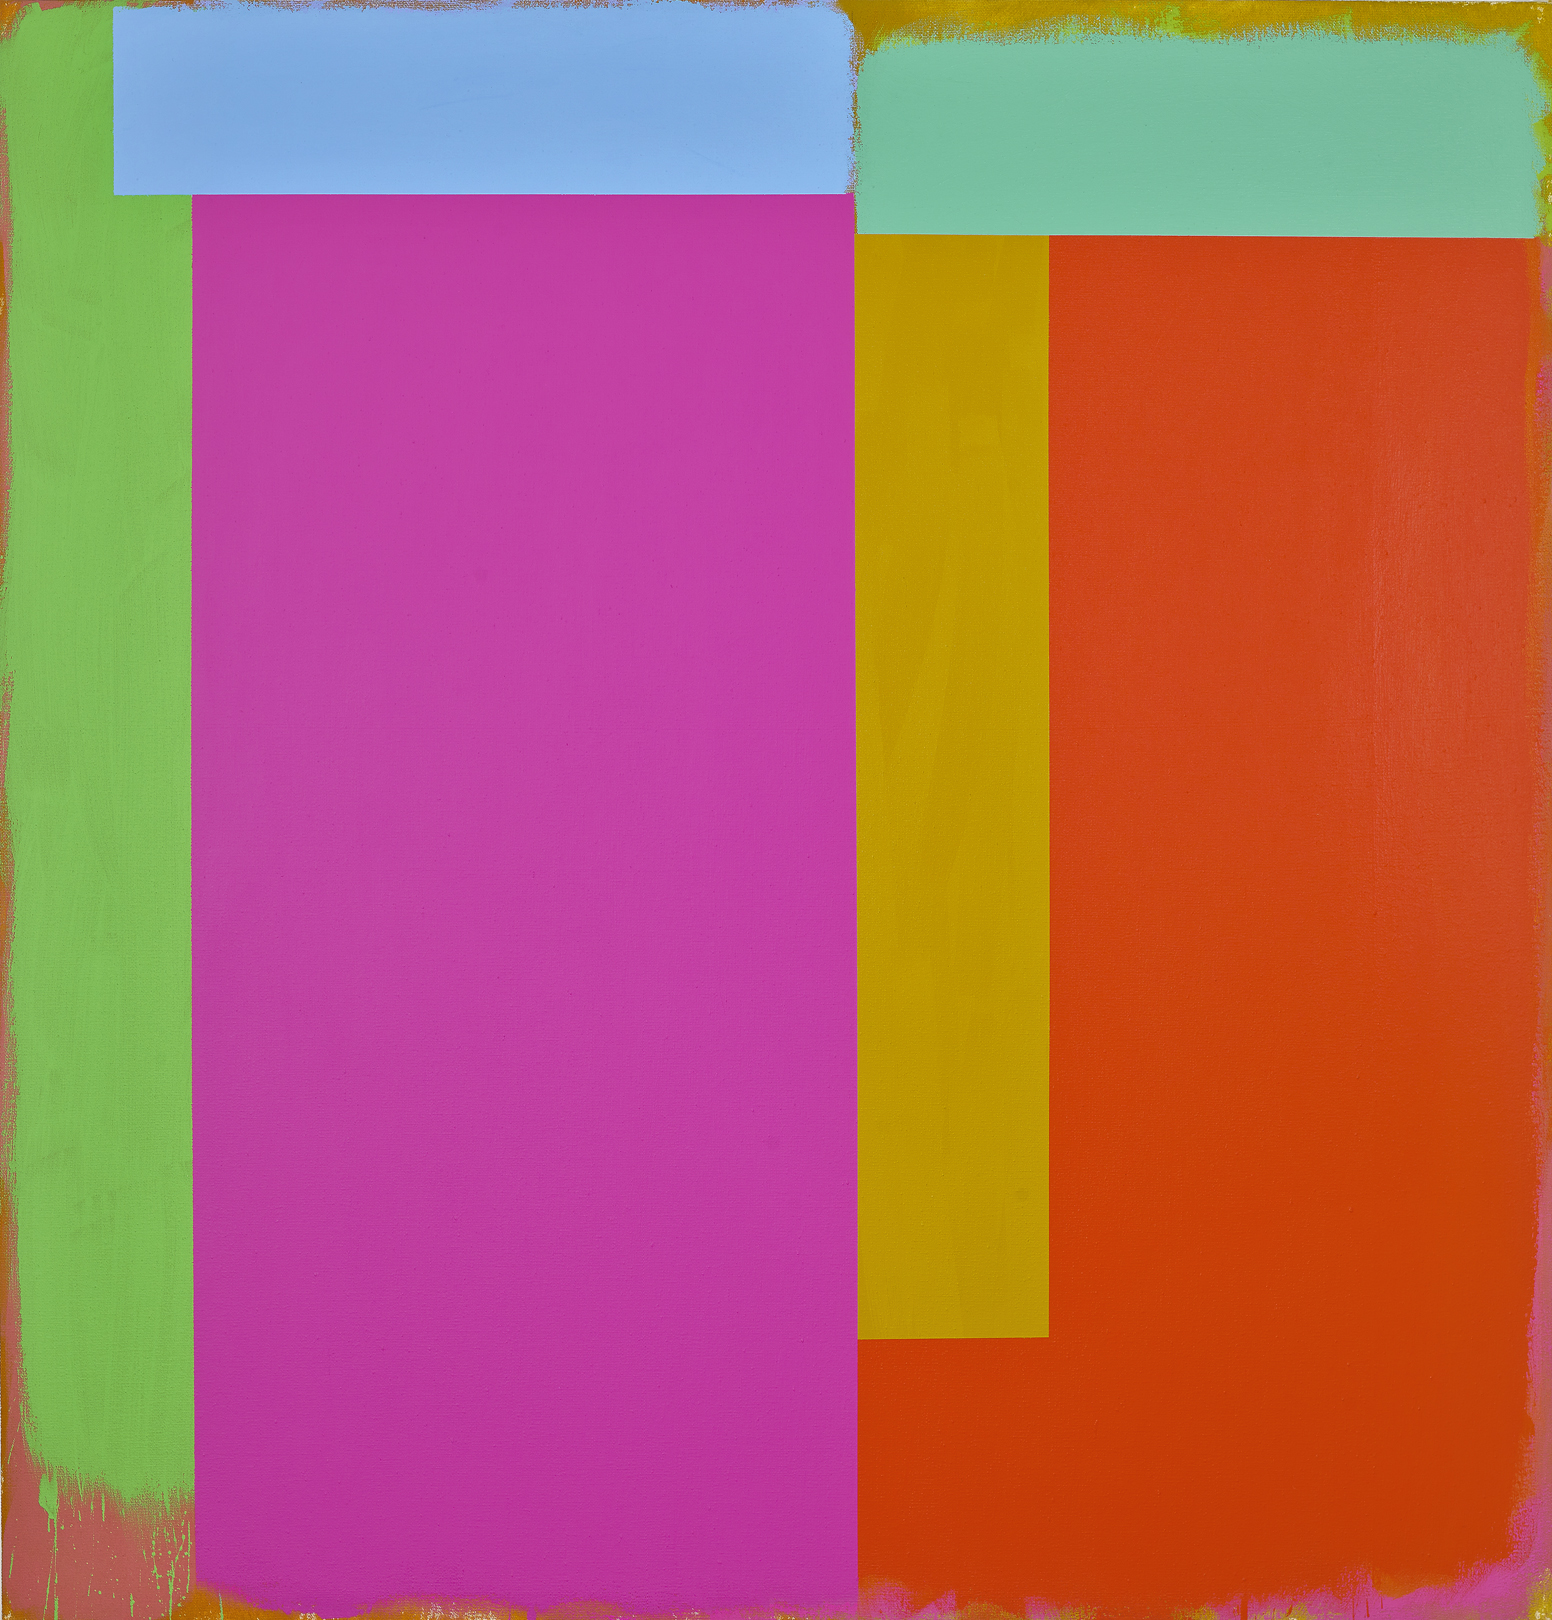 Marker/ California, 1986  acrylic on canvas 60 x 62 inches; 152.4 x 157.5 centimeters